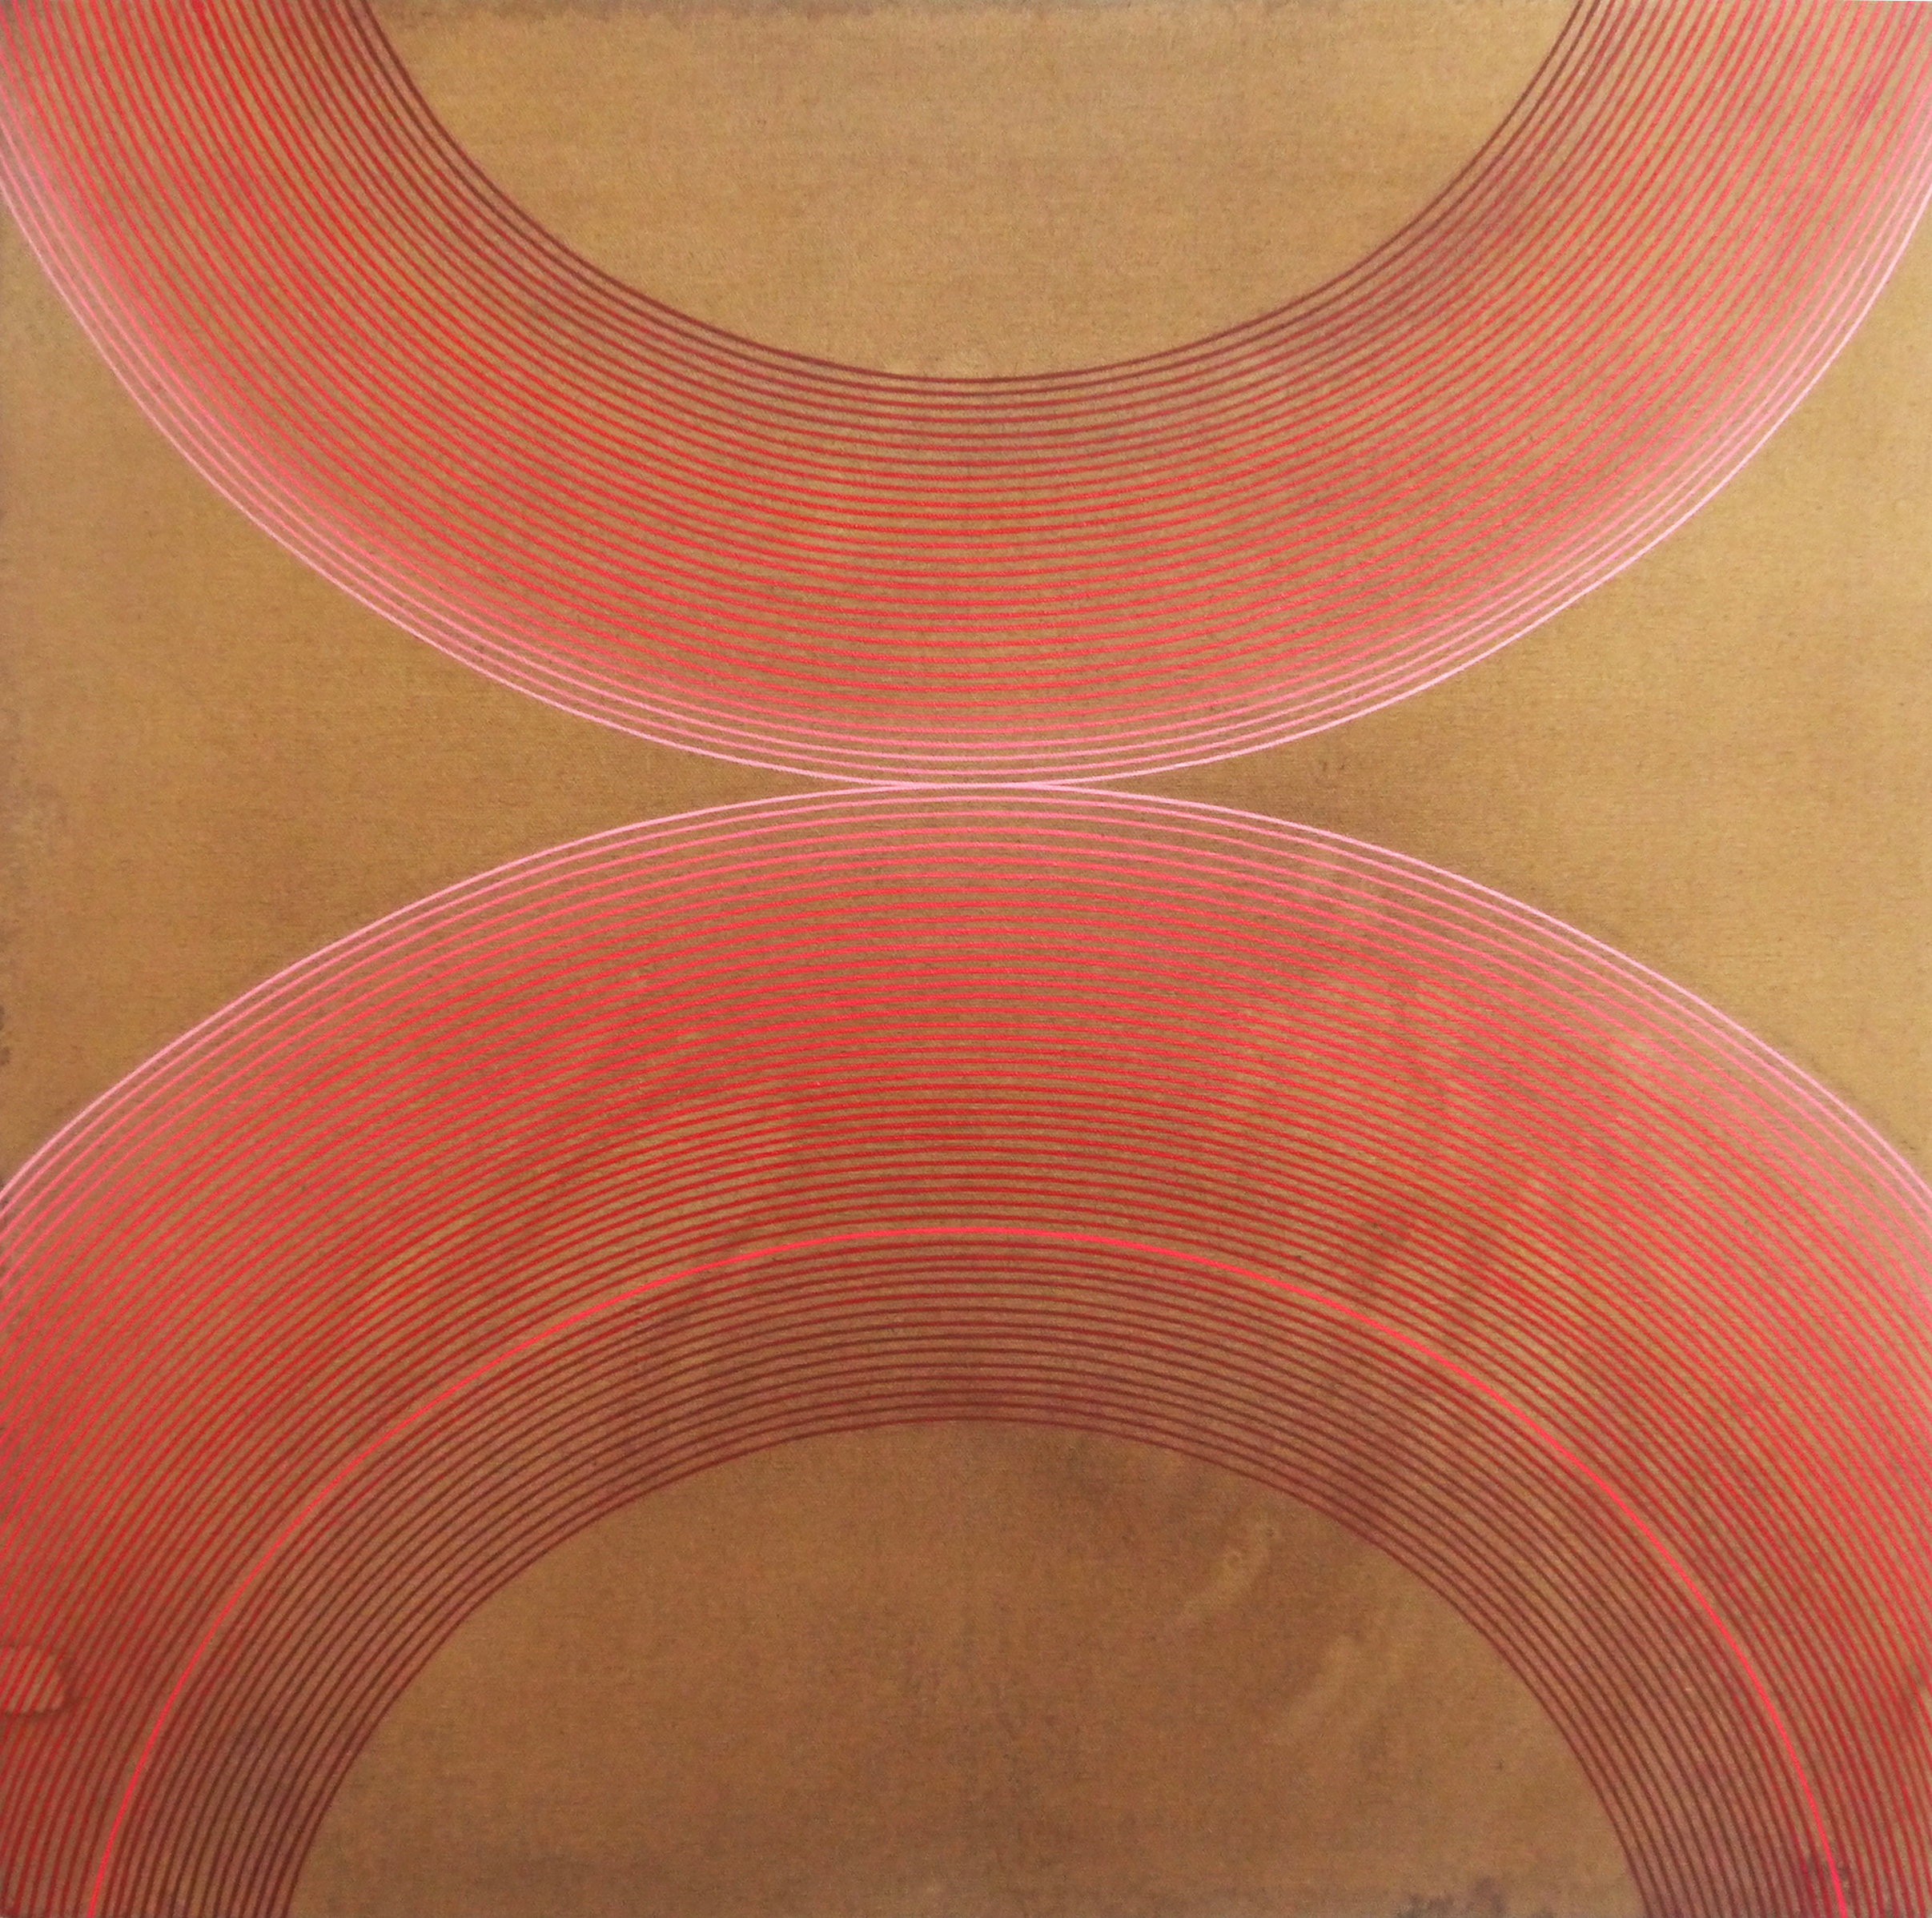 Kelly Ording_RedCoral_Acrylic on died canvas_24x24_2015.JPG